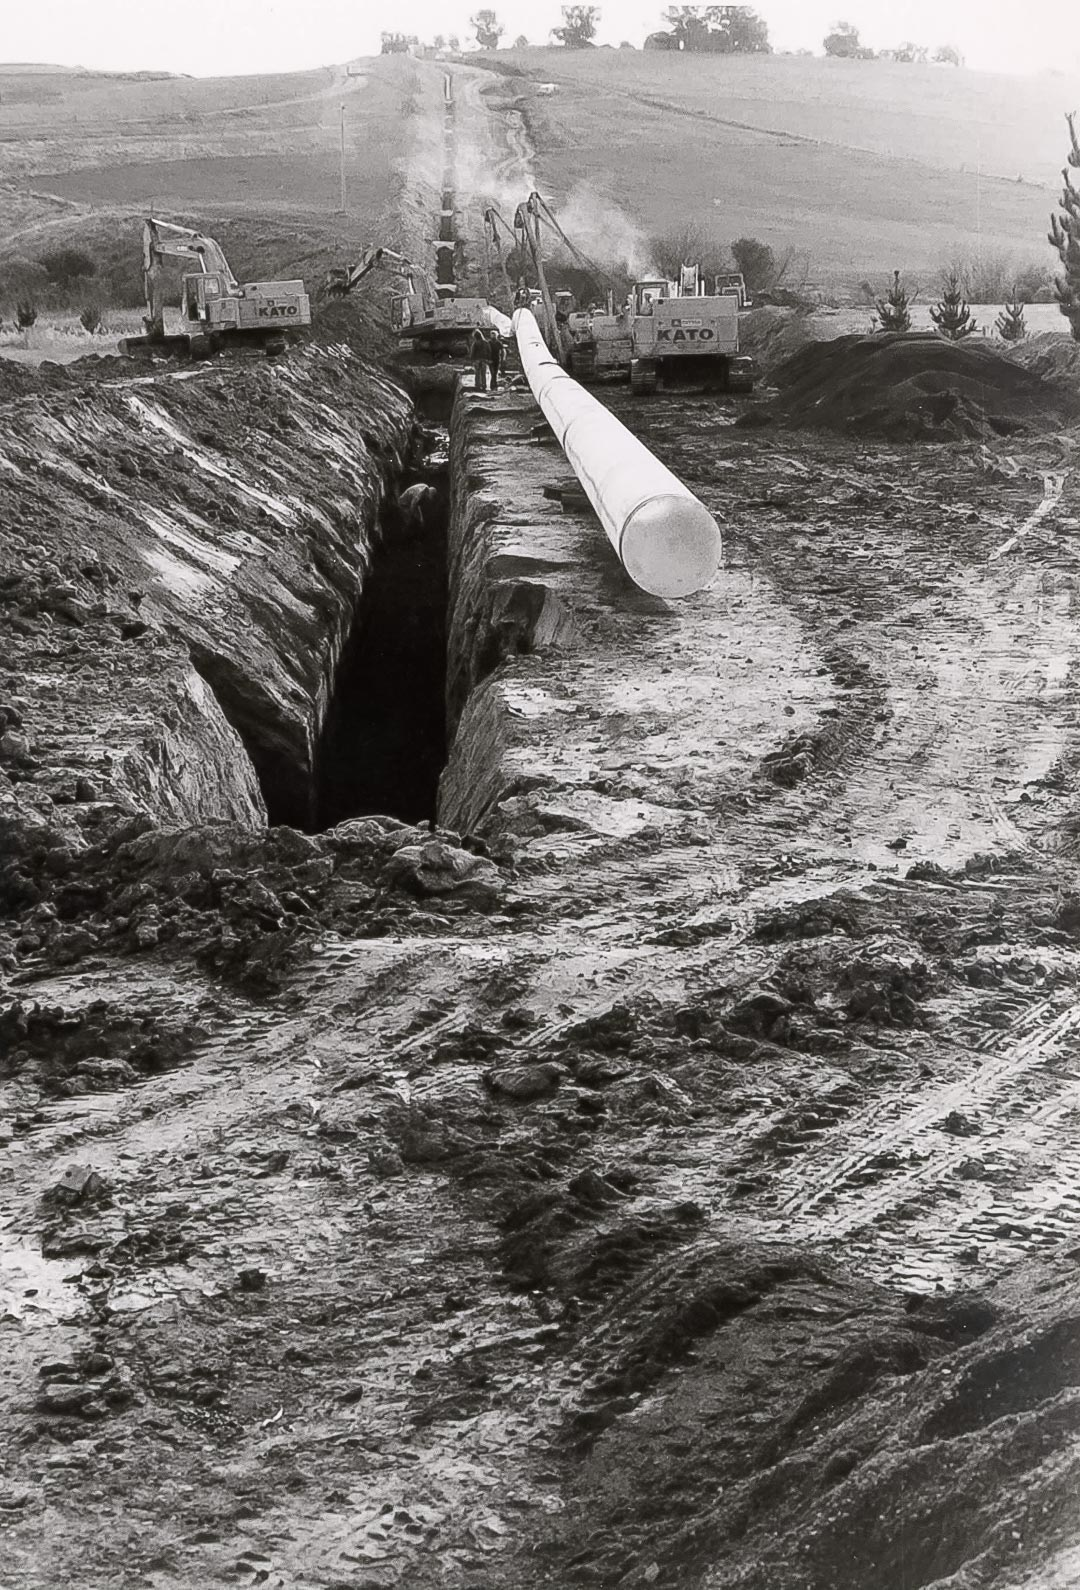 On 4 May 1990, the flat area of 3.524 hectares along the Arthurs Creek was purchased by the Melbourne & Metropolitan Board of Works, to provide an easement for access to the Gas and Fuel Corporation's high pressure gas line